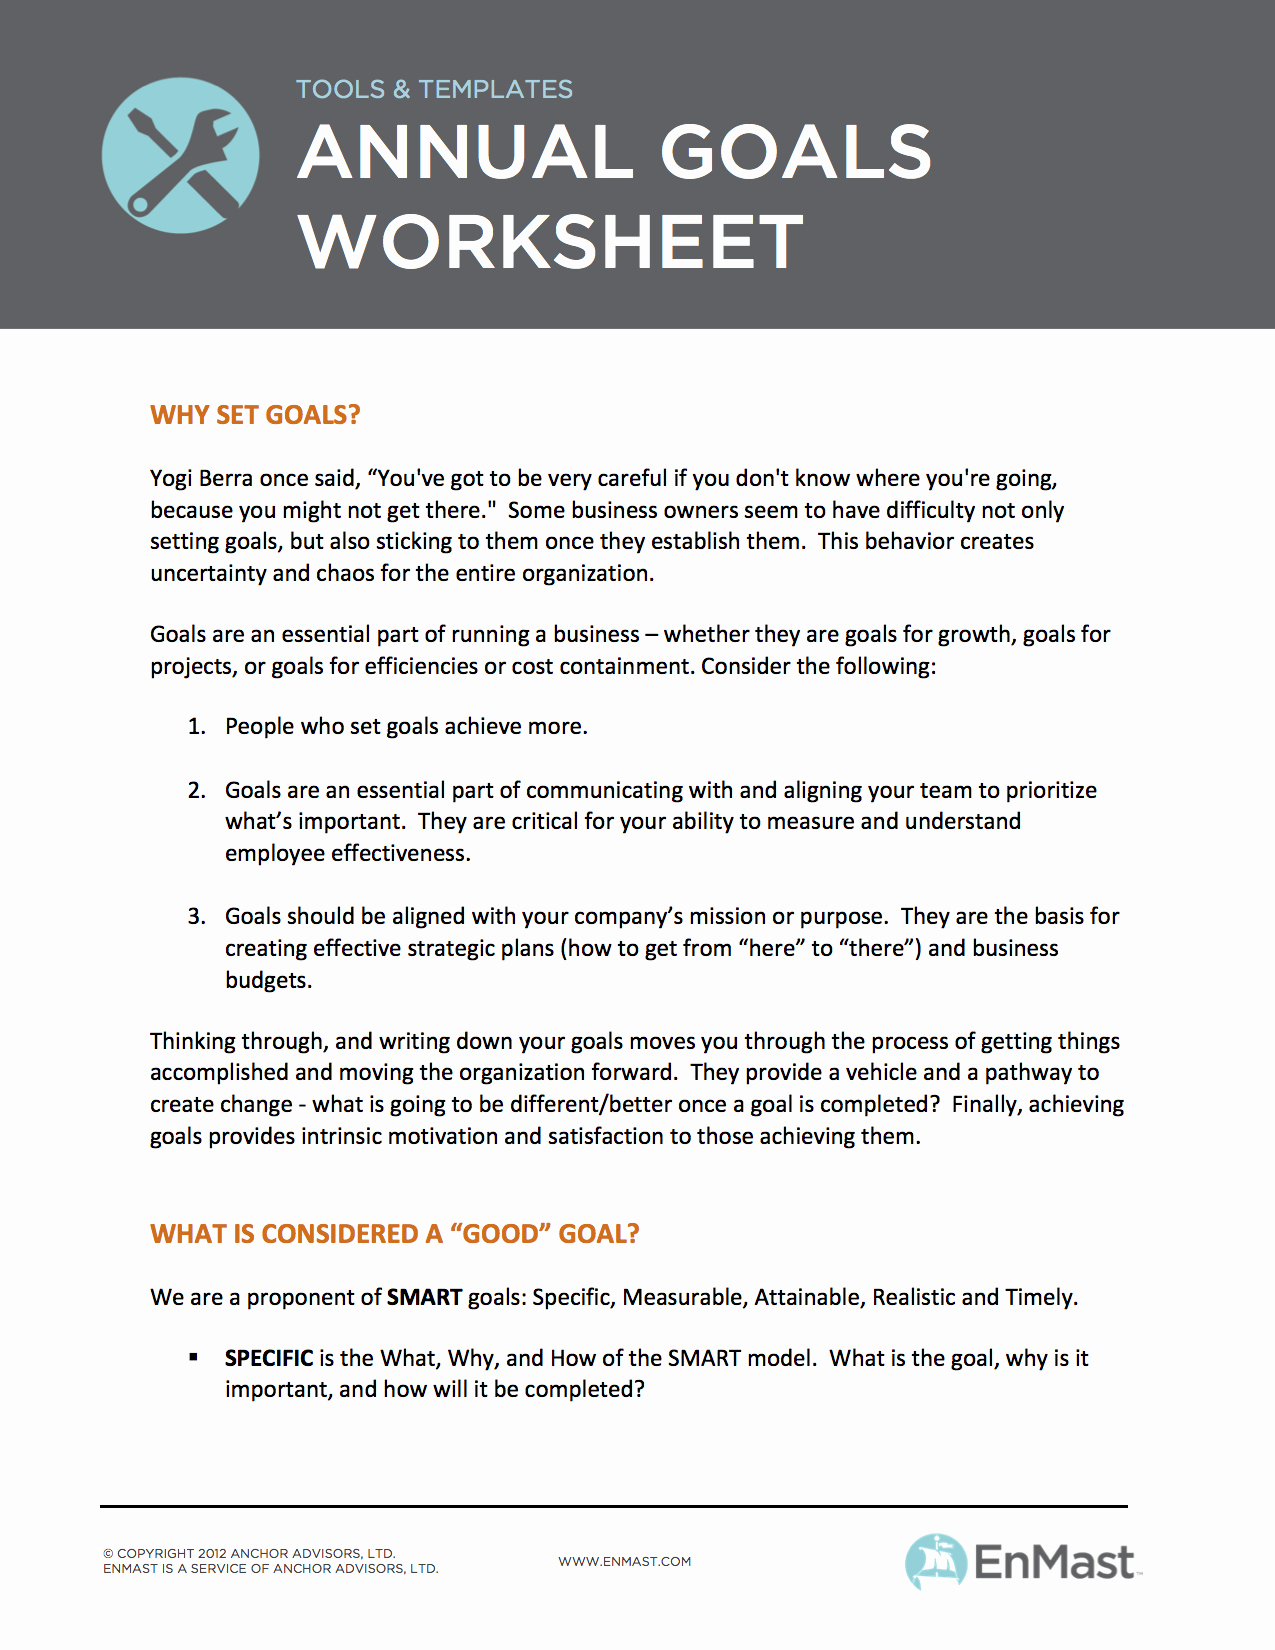 Employee Goal Setting Template Awesome Annual Goal Setting Worksheet for Business